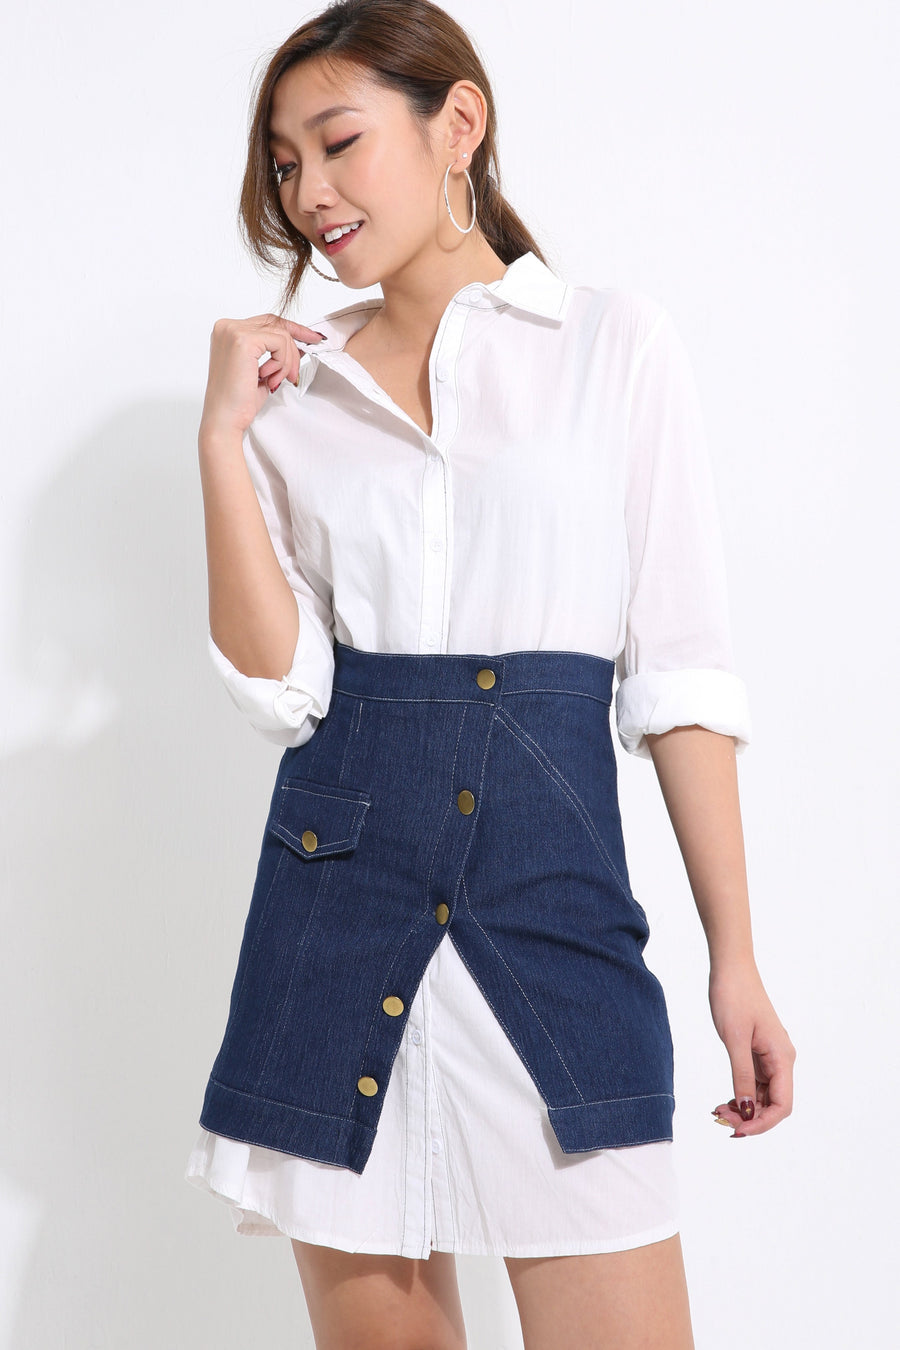 Collar Top with Jeans Skirt Set 1587 - ample-couture